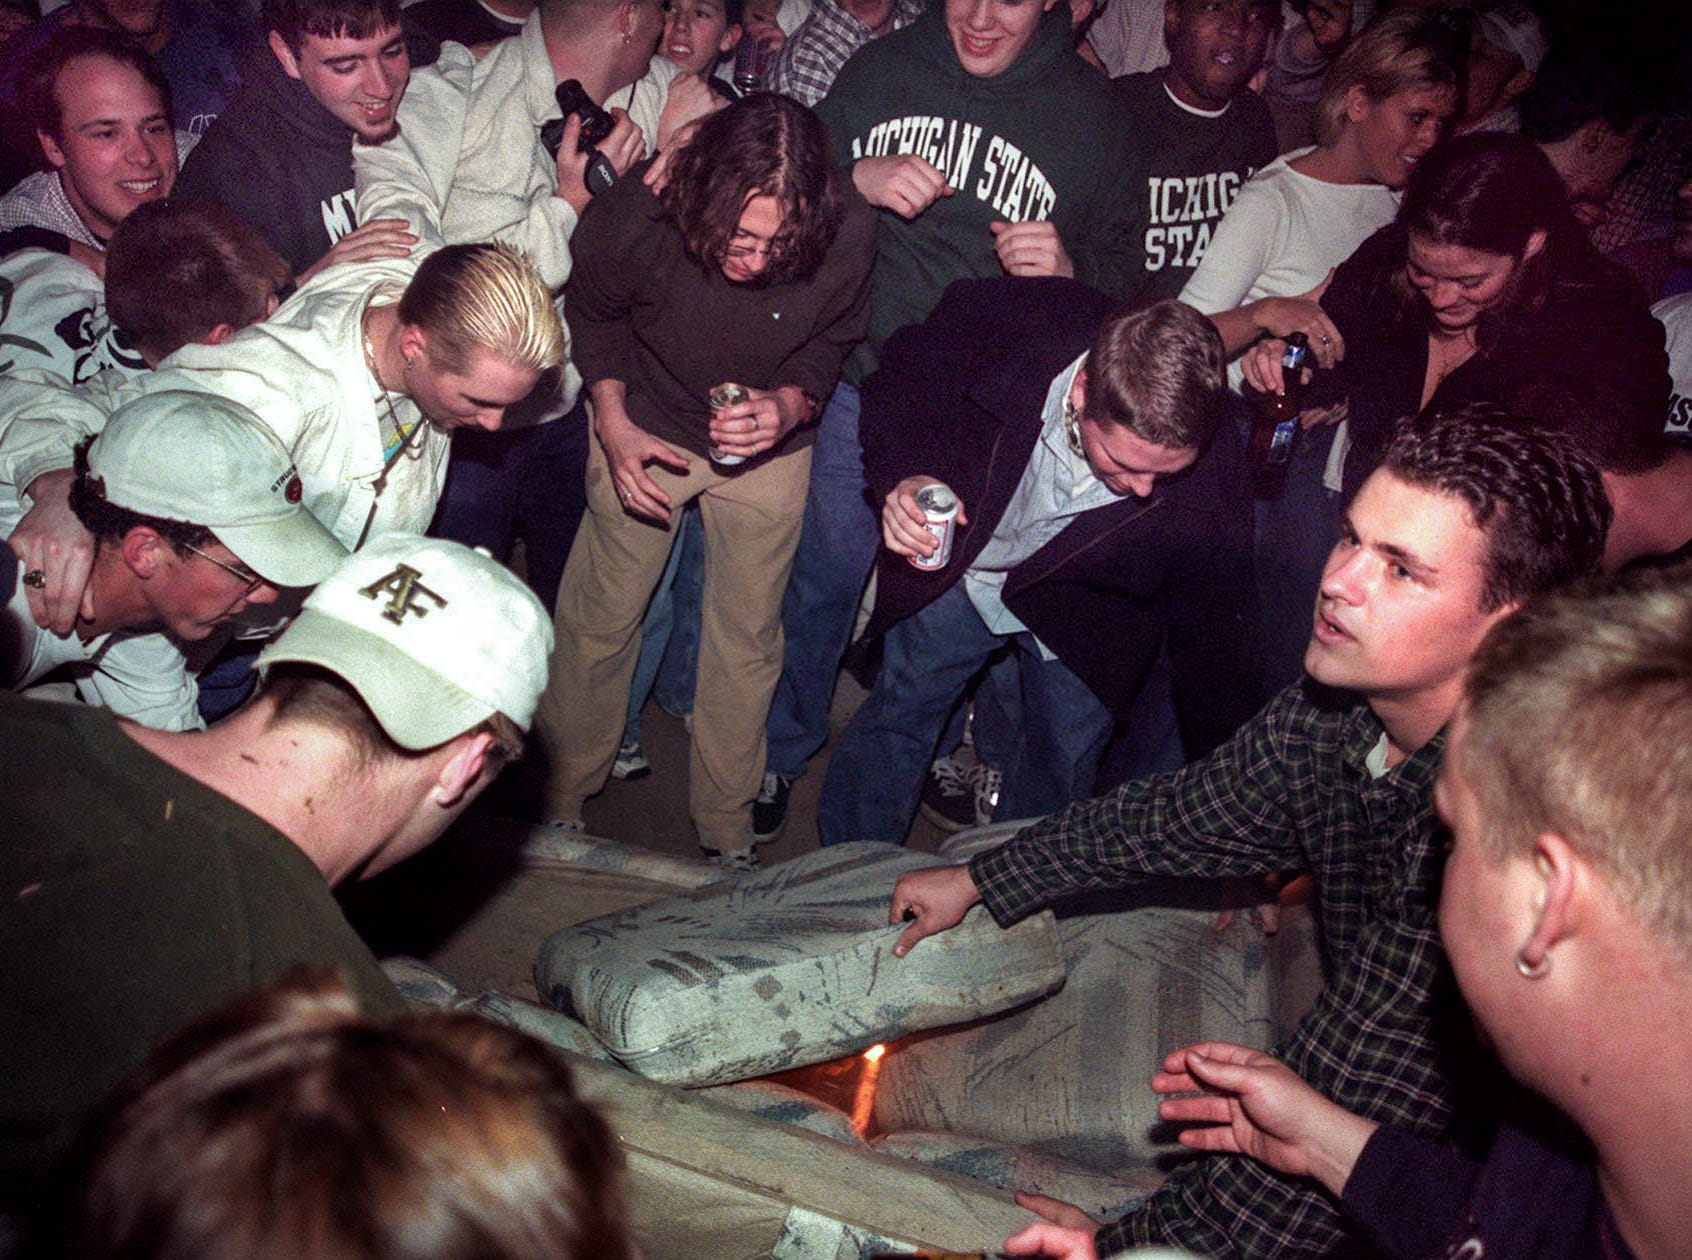 Michigan State University students and others start a couch on fire in Cedar Village in East Lansing on Saturday, March 27, 1999, after MSU lost to Duke 68-62 during a Final Four game in the NCAA Men's Basketball Tournament.